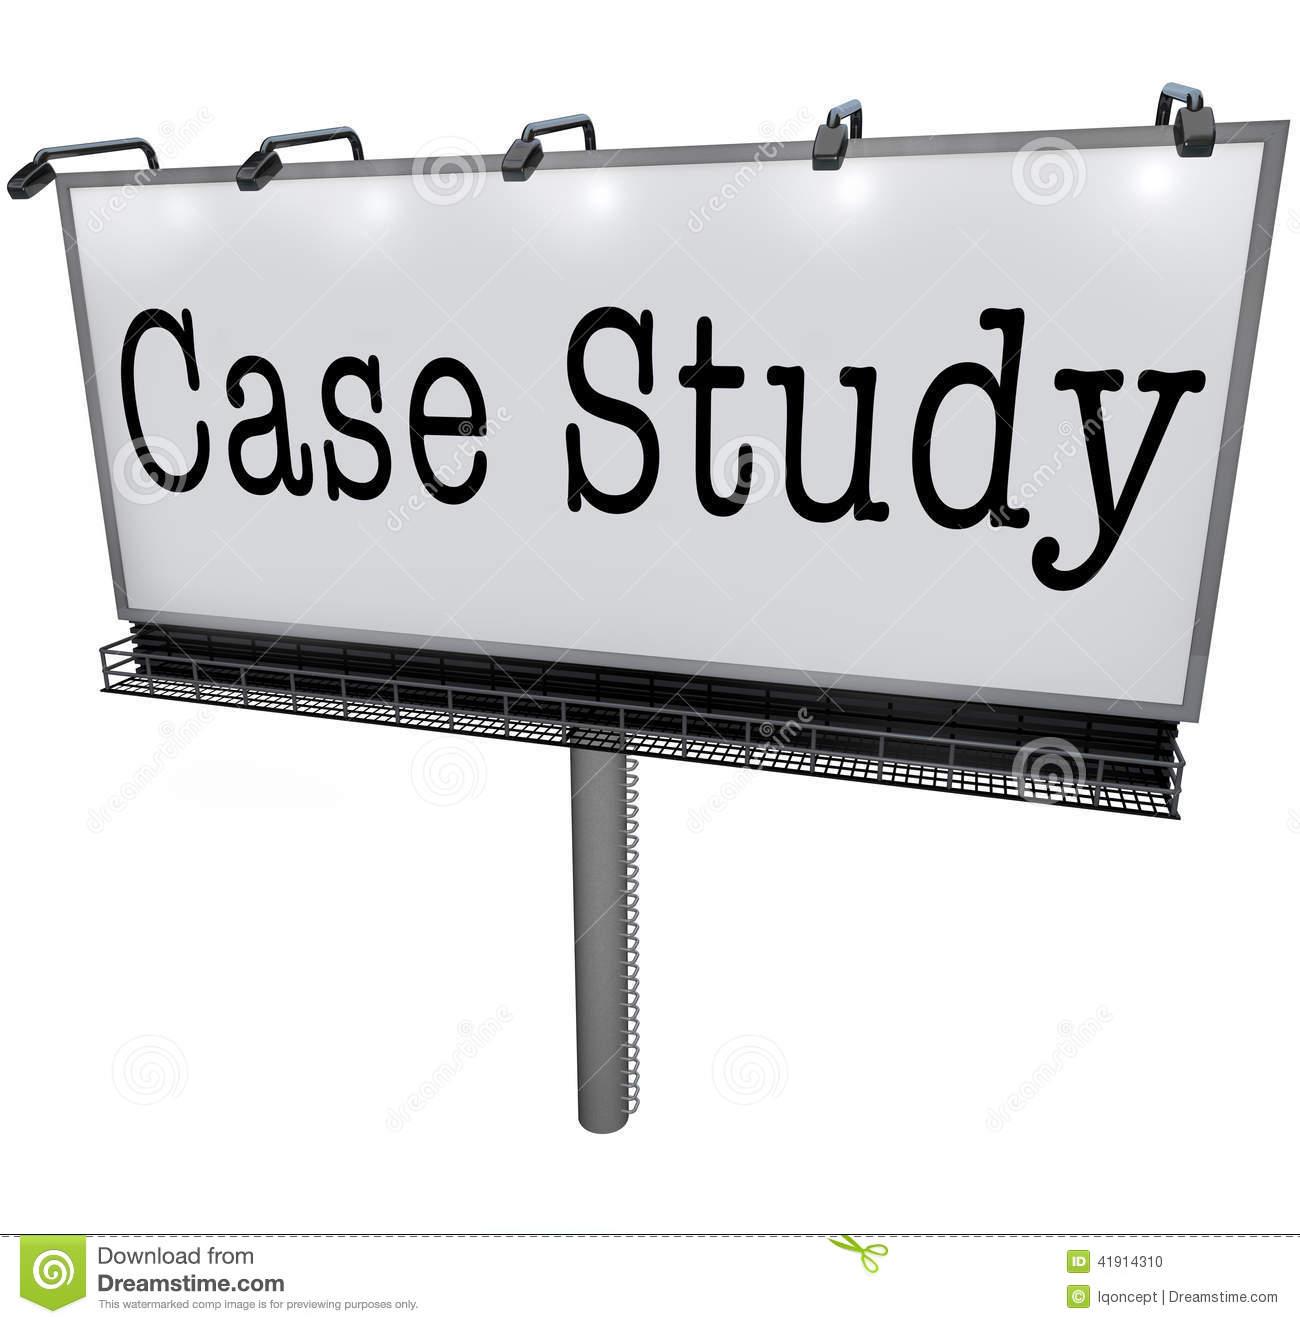 case study 1 practice 4101 case study analysis what is a case study analysis in the context of a business course a case study is an account of an activity, event or problem that contains a real or hypothetical situation and includes the complexities you would encounter in the workplace (mort, cross and downey, 2002).